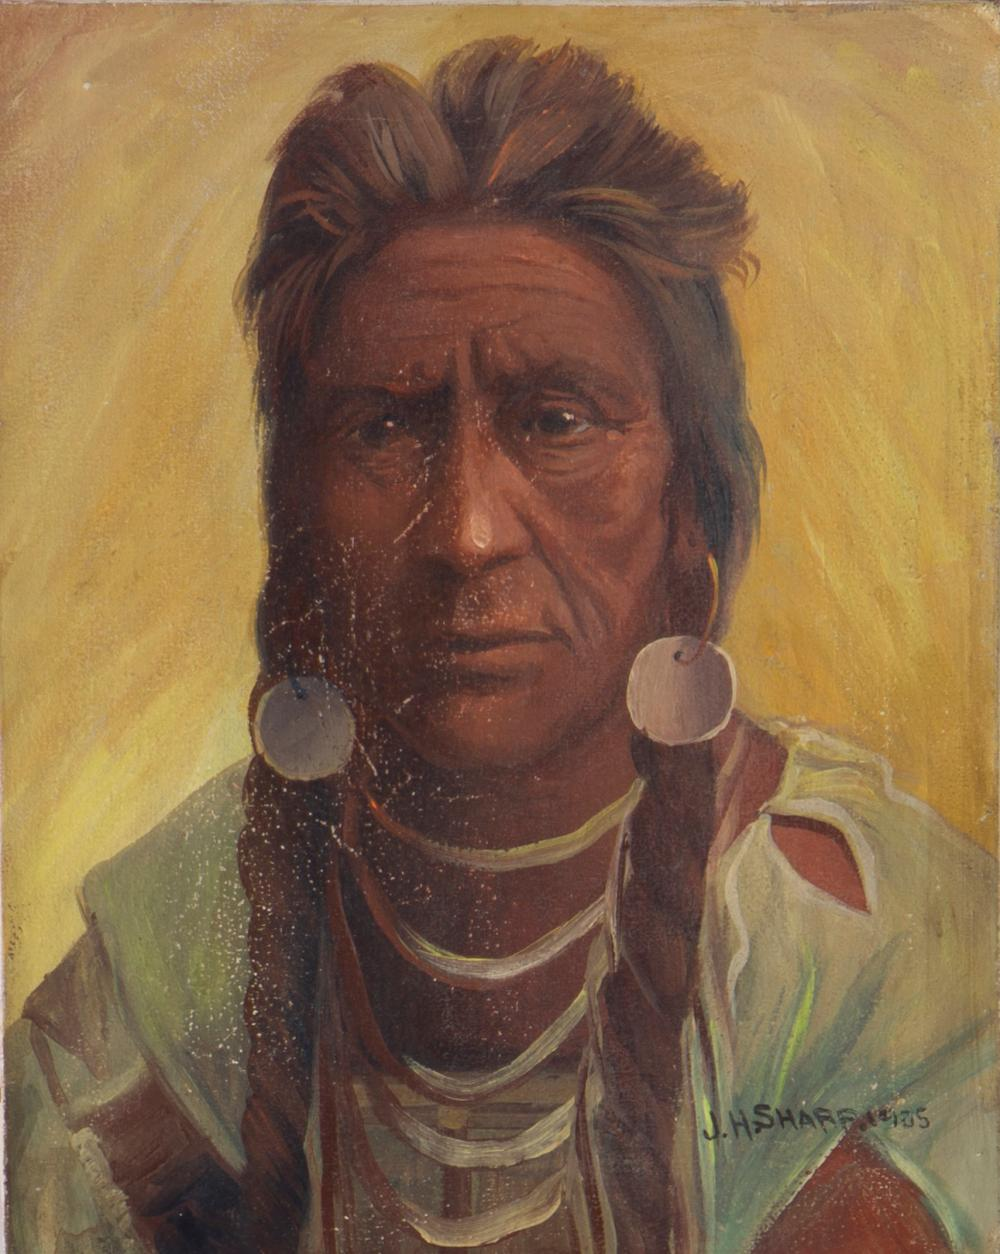 """Joseph Henry Sharp, (1859-1953 Pasadena, CA), Portrait of a Sioux Indian, 1904, Oil on canvas, 10"""" H x 8"""" W"""